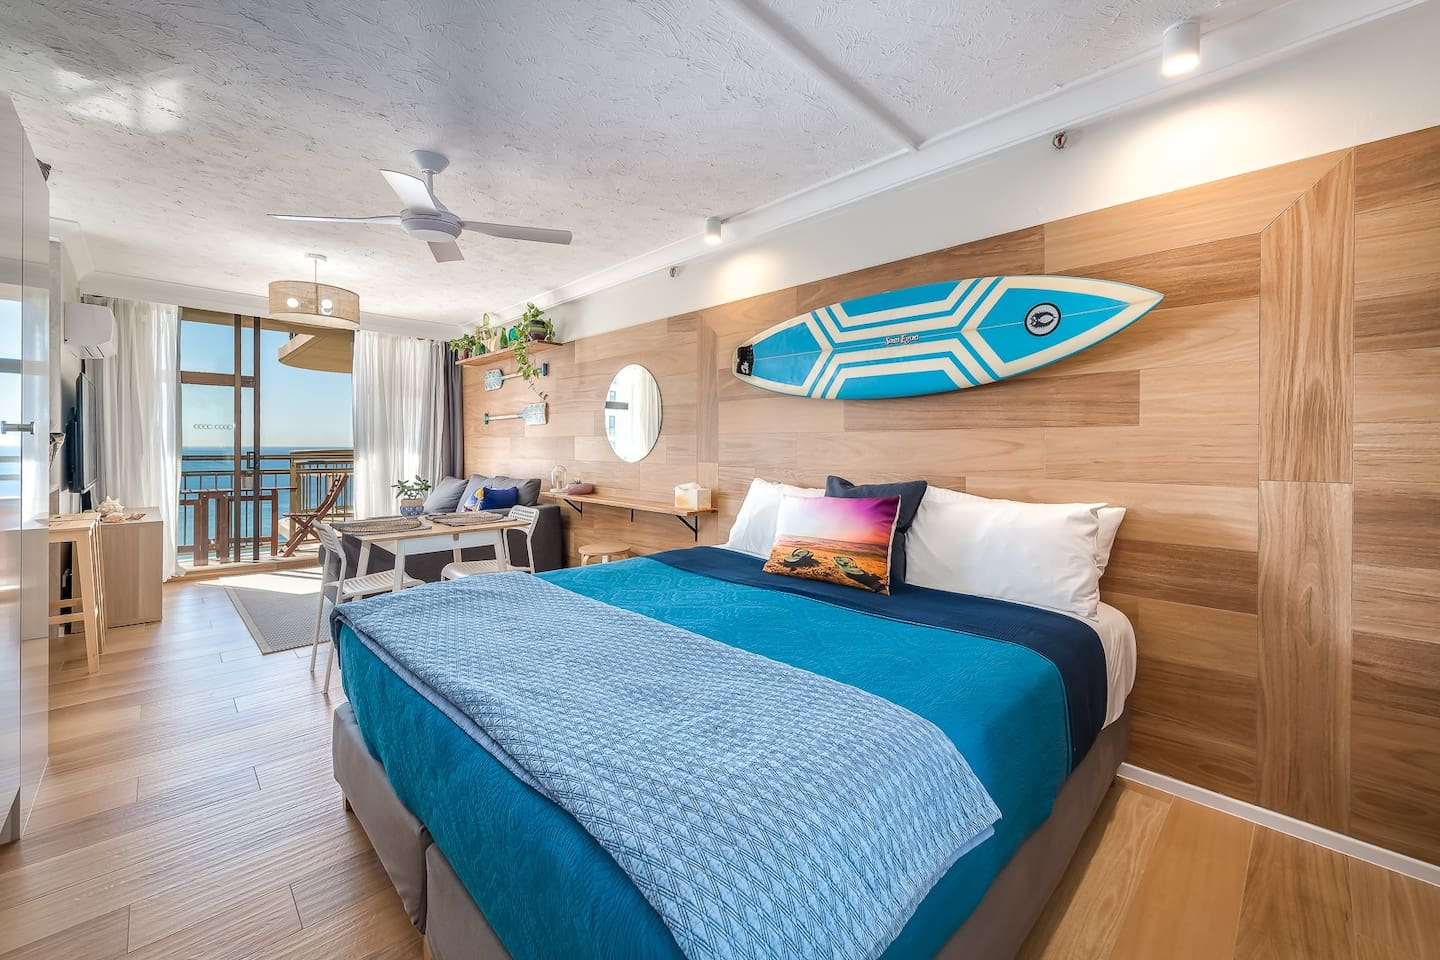 Welcome to the beach house king suite. Luxury accomadation in the heart of Surfers Paradise